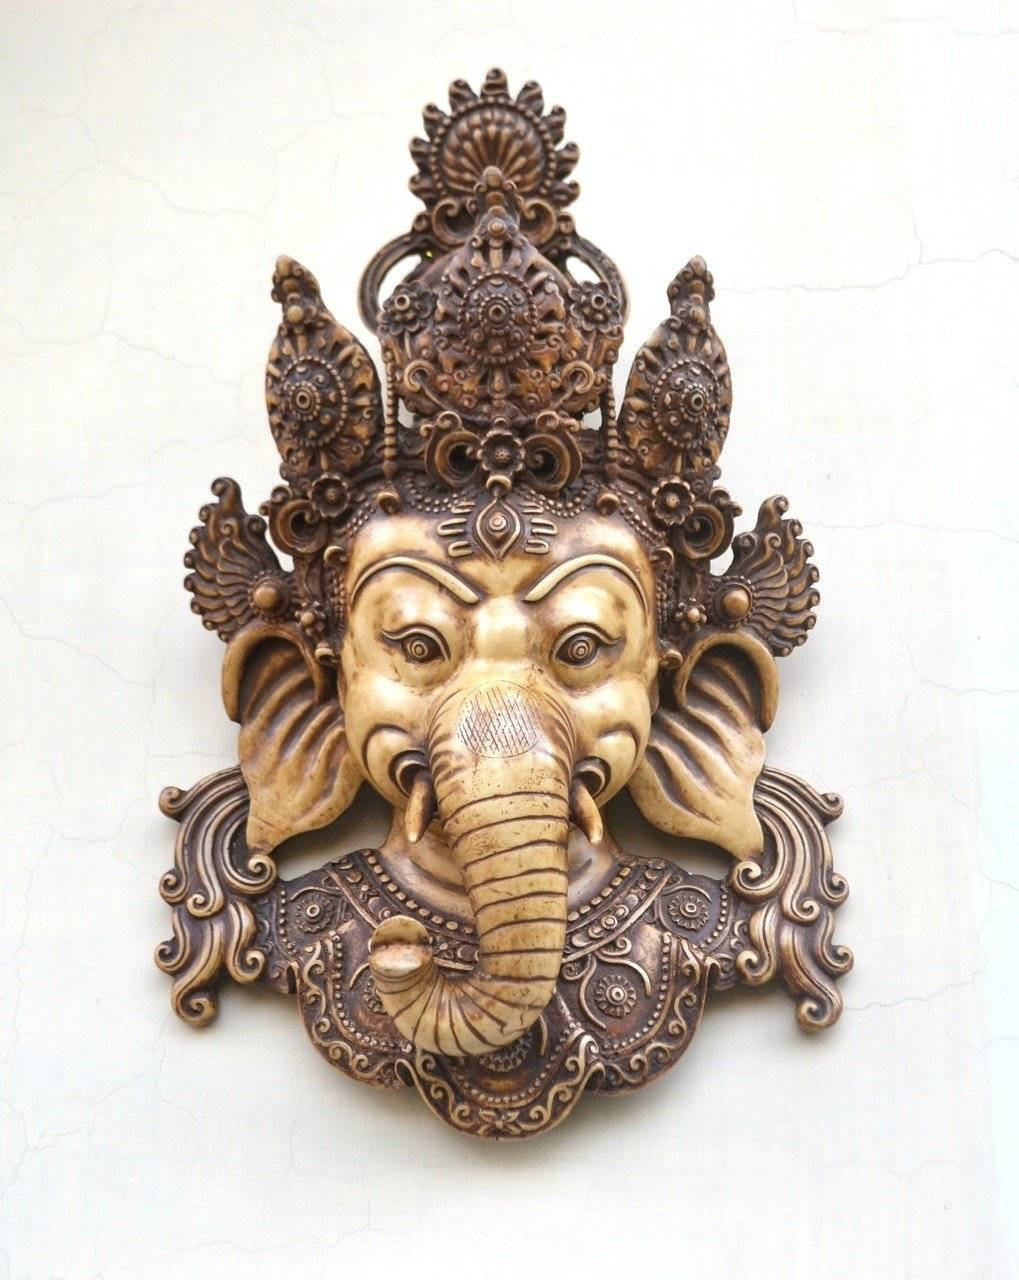 Wall Hanging Mask Decor Indian Wall Sculpture Art Vintage Creation Intended For Best And Newest Indian Metal Wall Art (View 18 of 20)